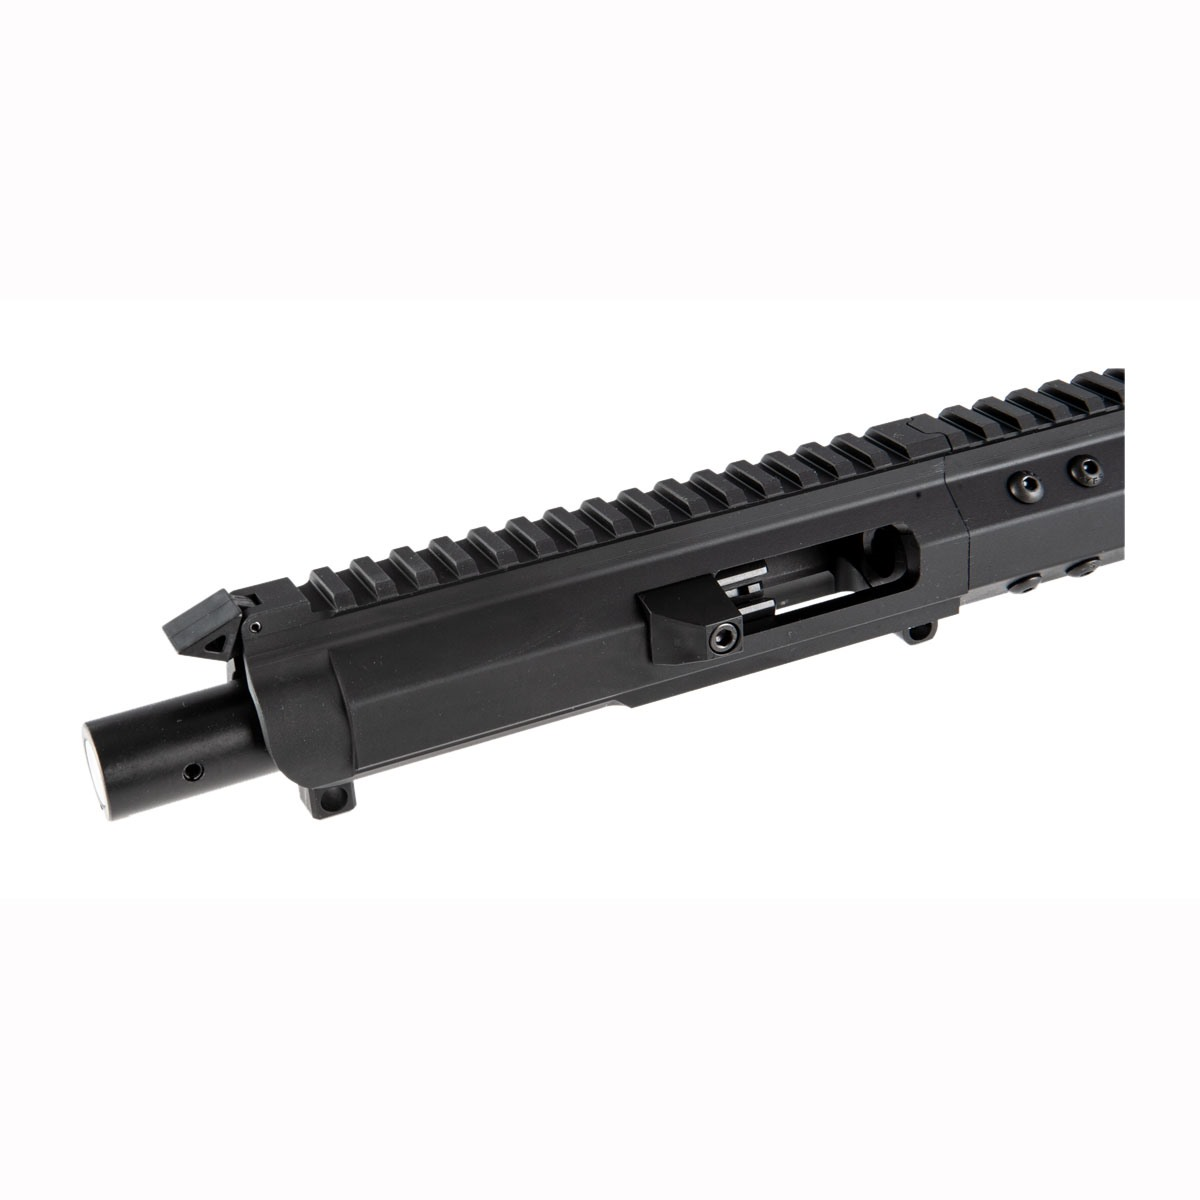 FOXTROT MIKE PRODUCTS - AR-15 9MM UPPER RECEIVERS M-LOK ASSEMBLED